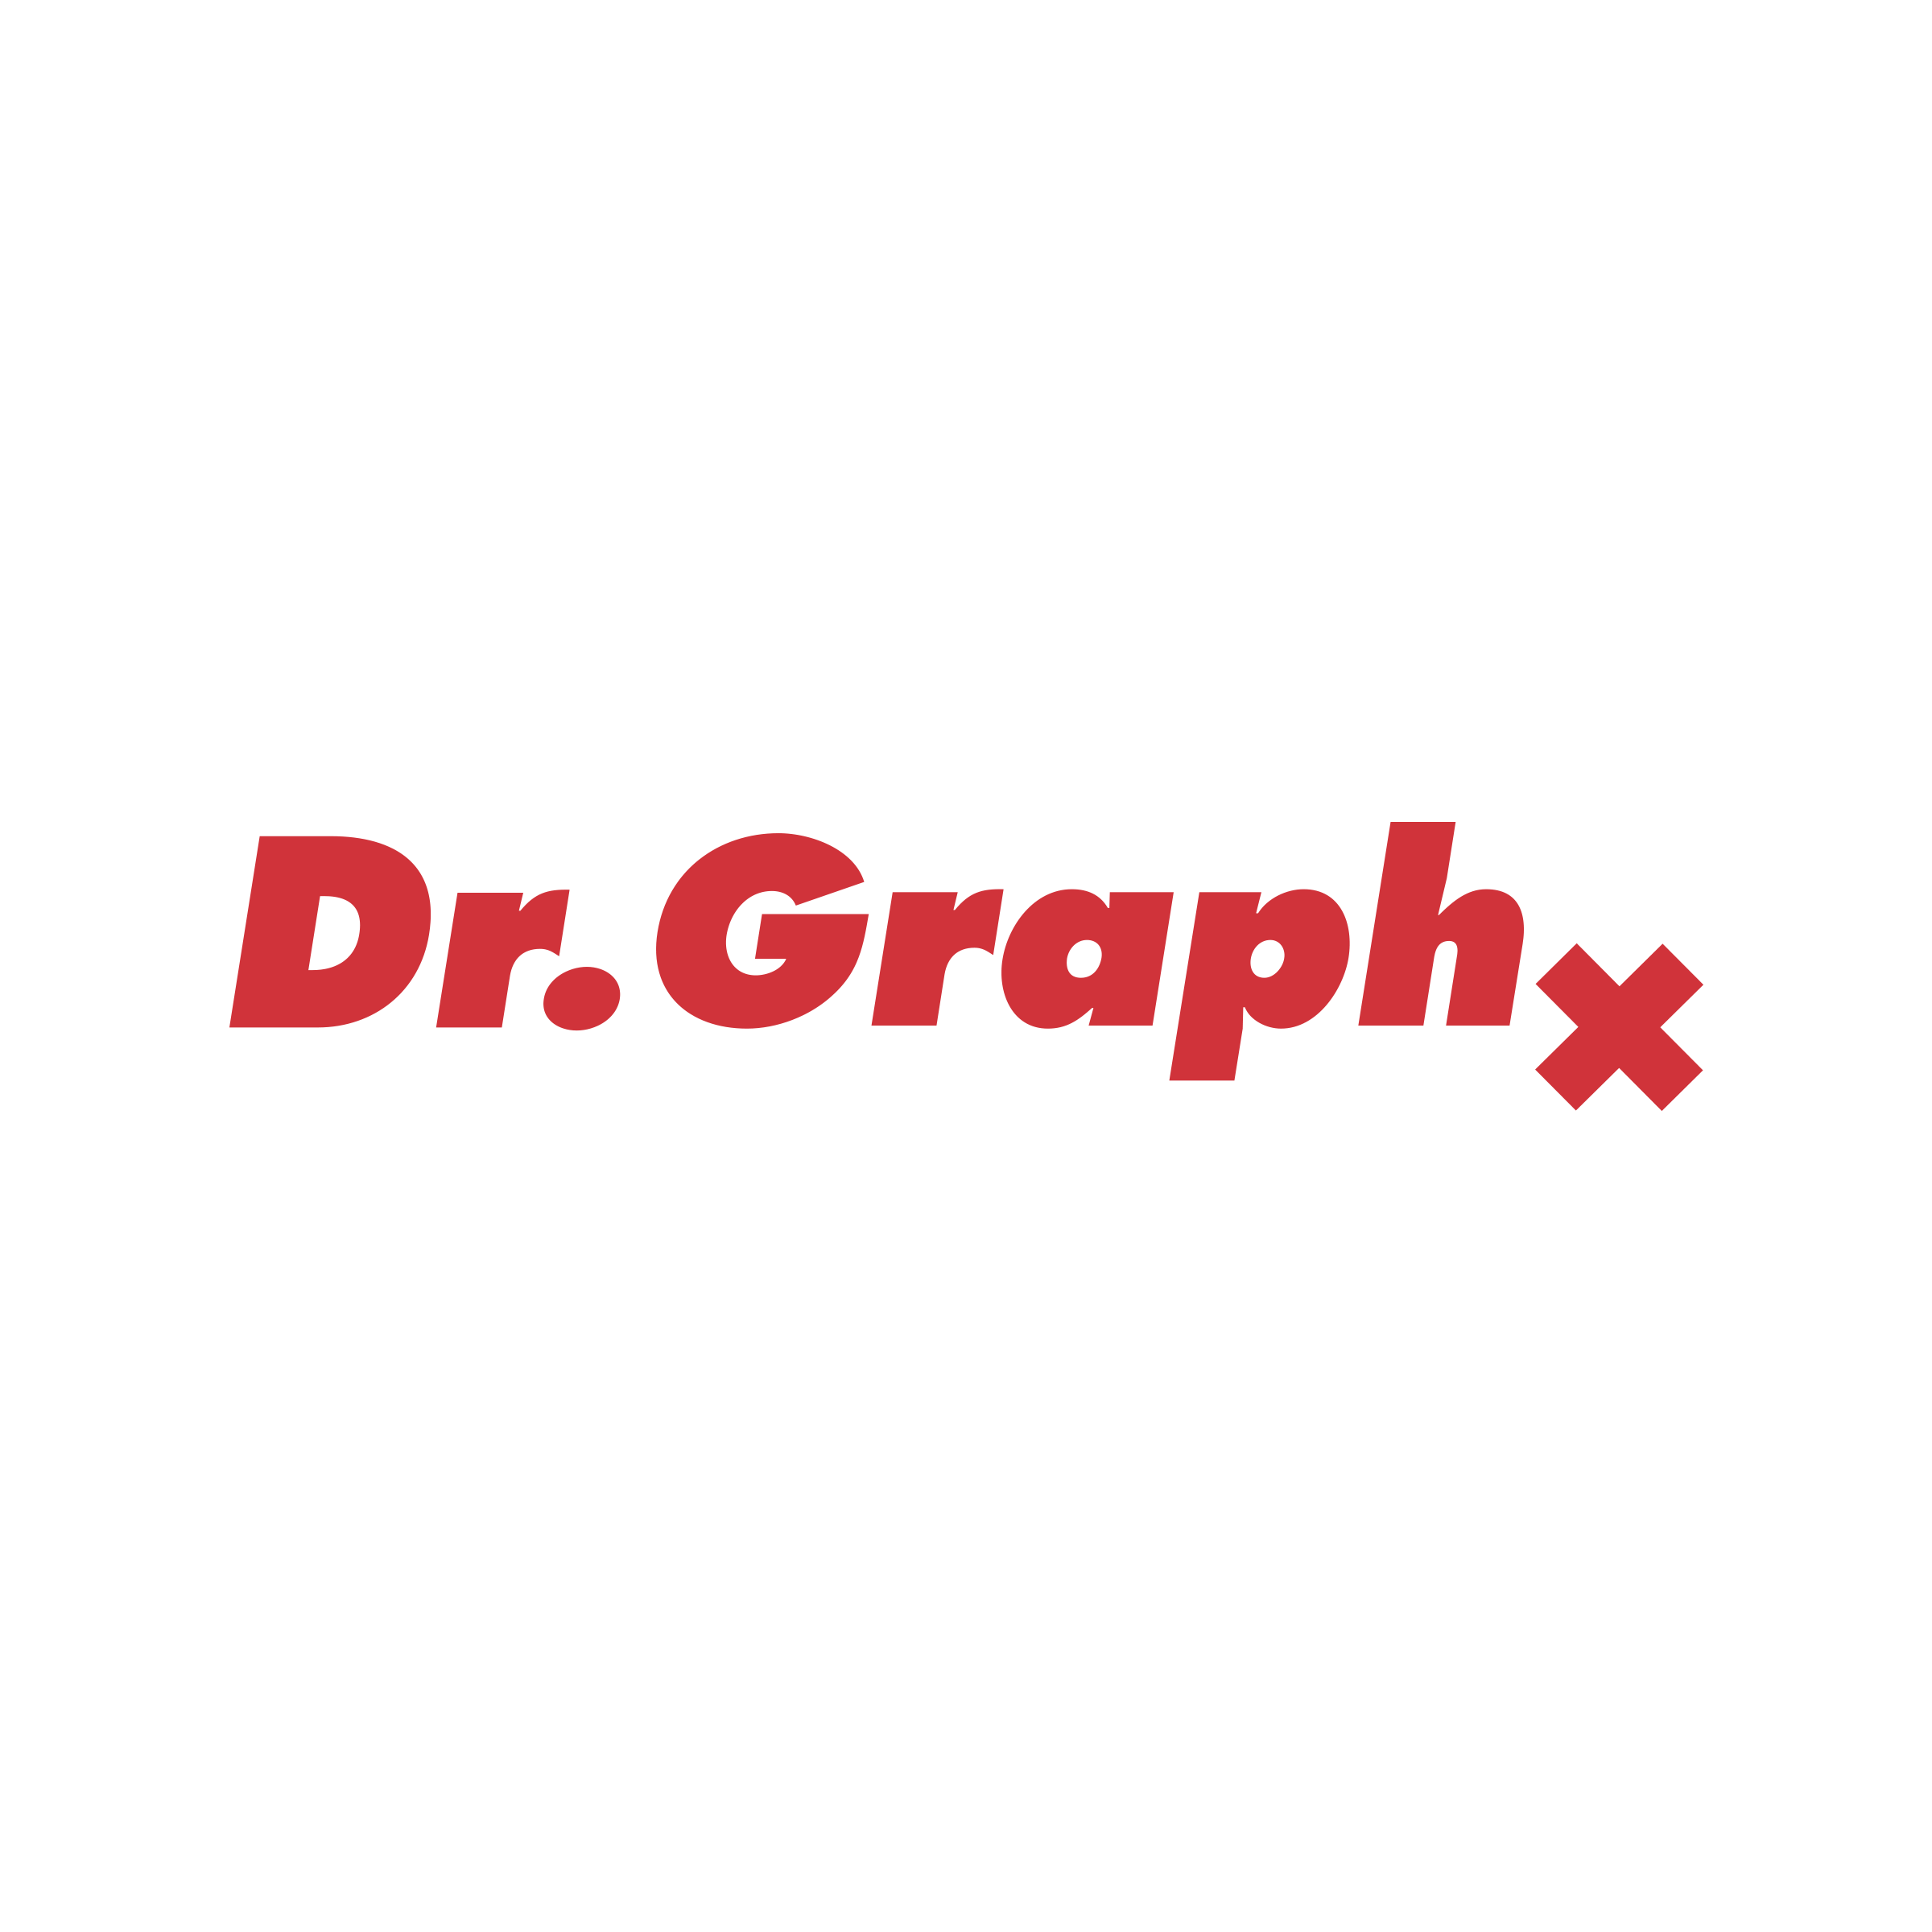 Dr Graphx.png